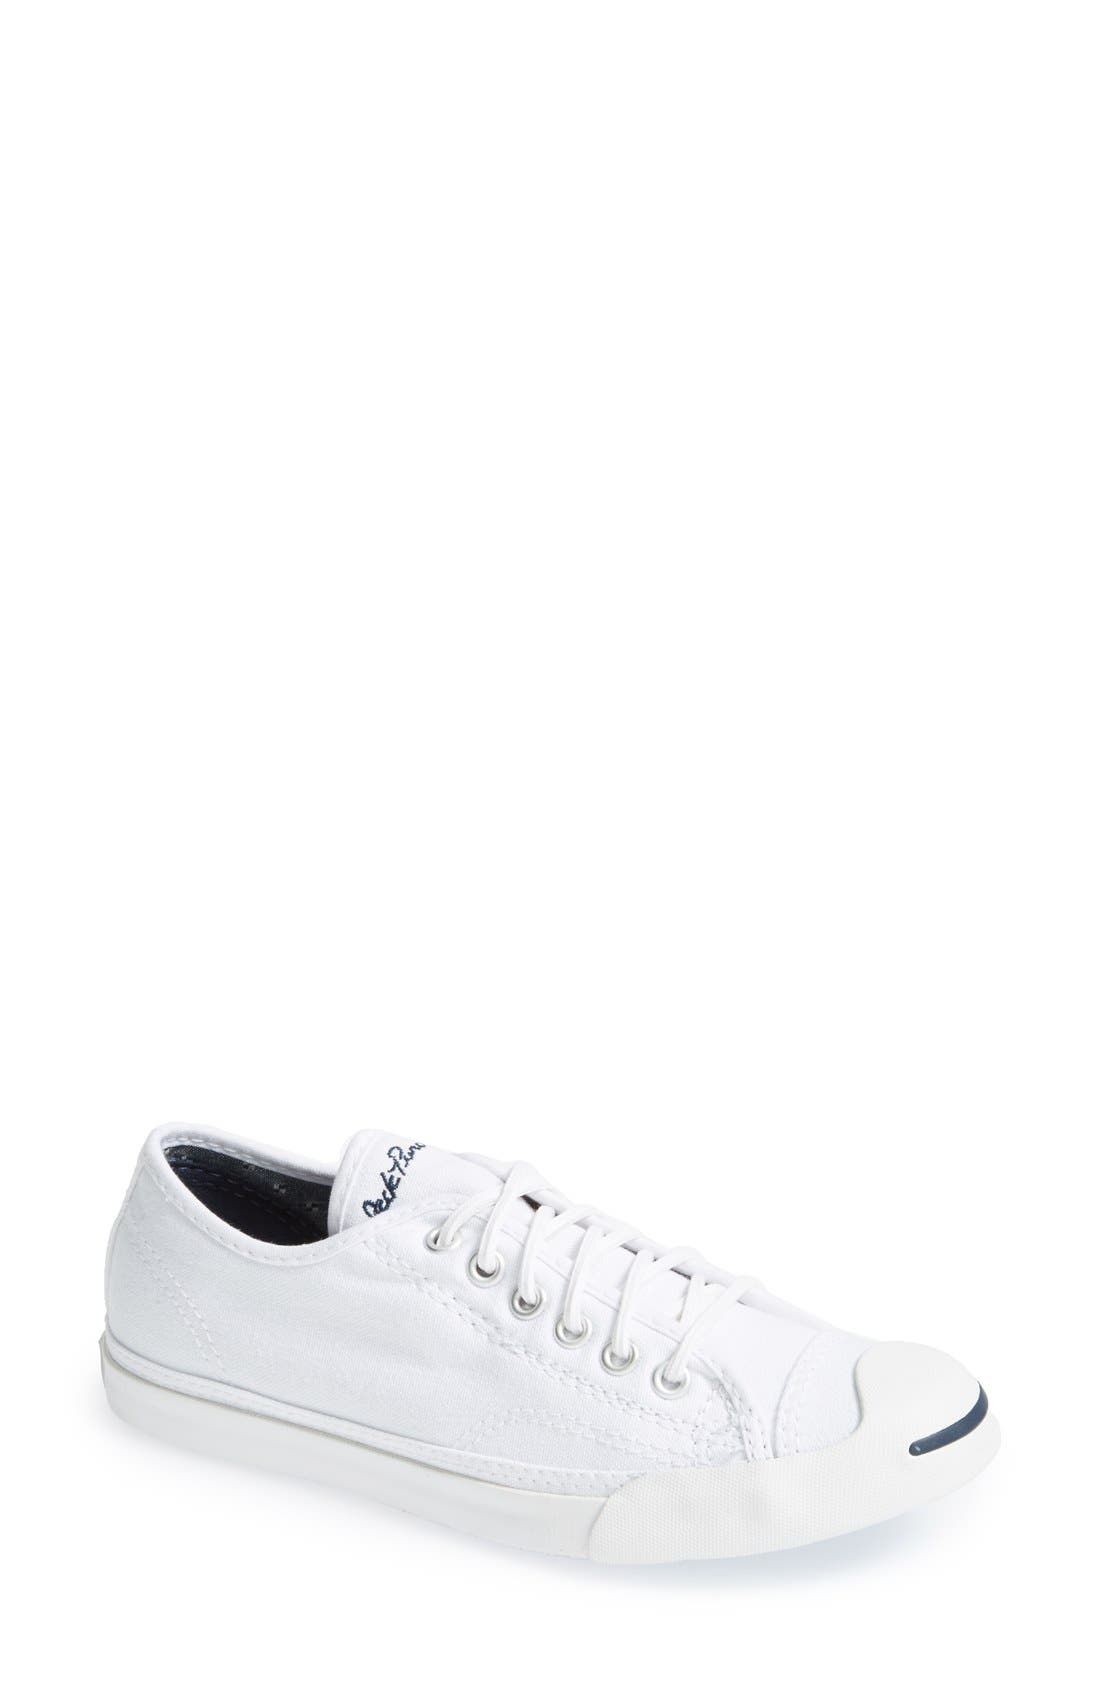 Alternate Image 2  - Converse 'Jack Purcell - LP' Low Top Sneaker (Women)